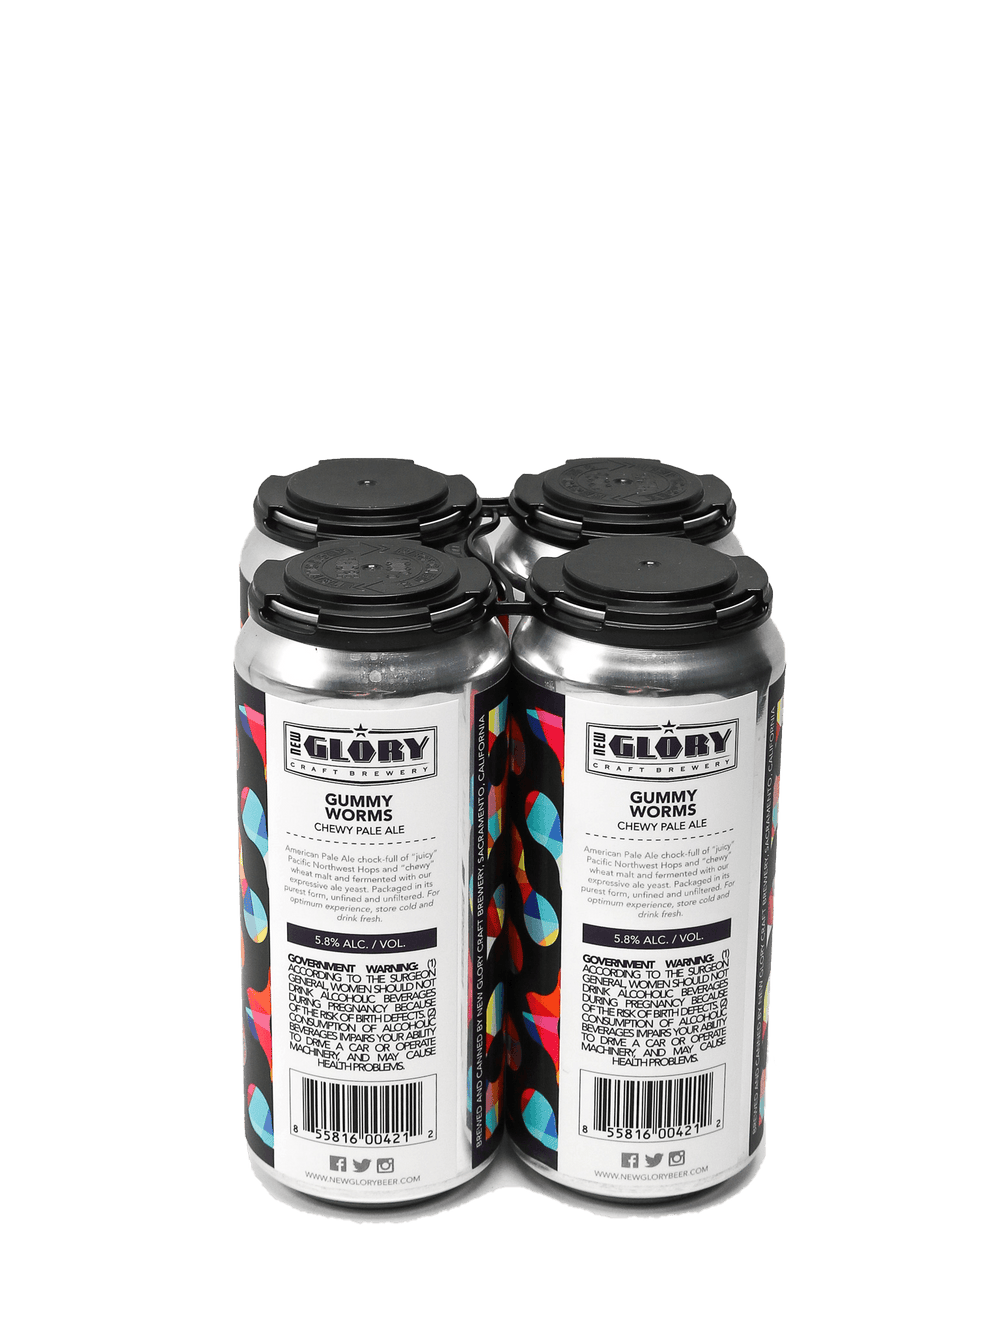 New Glory Gummy Worms Pale Ale 4pk cans